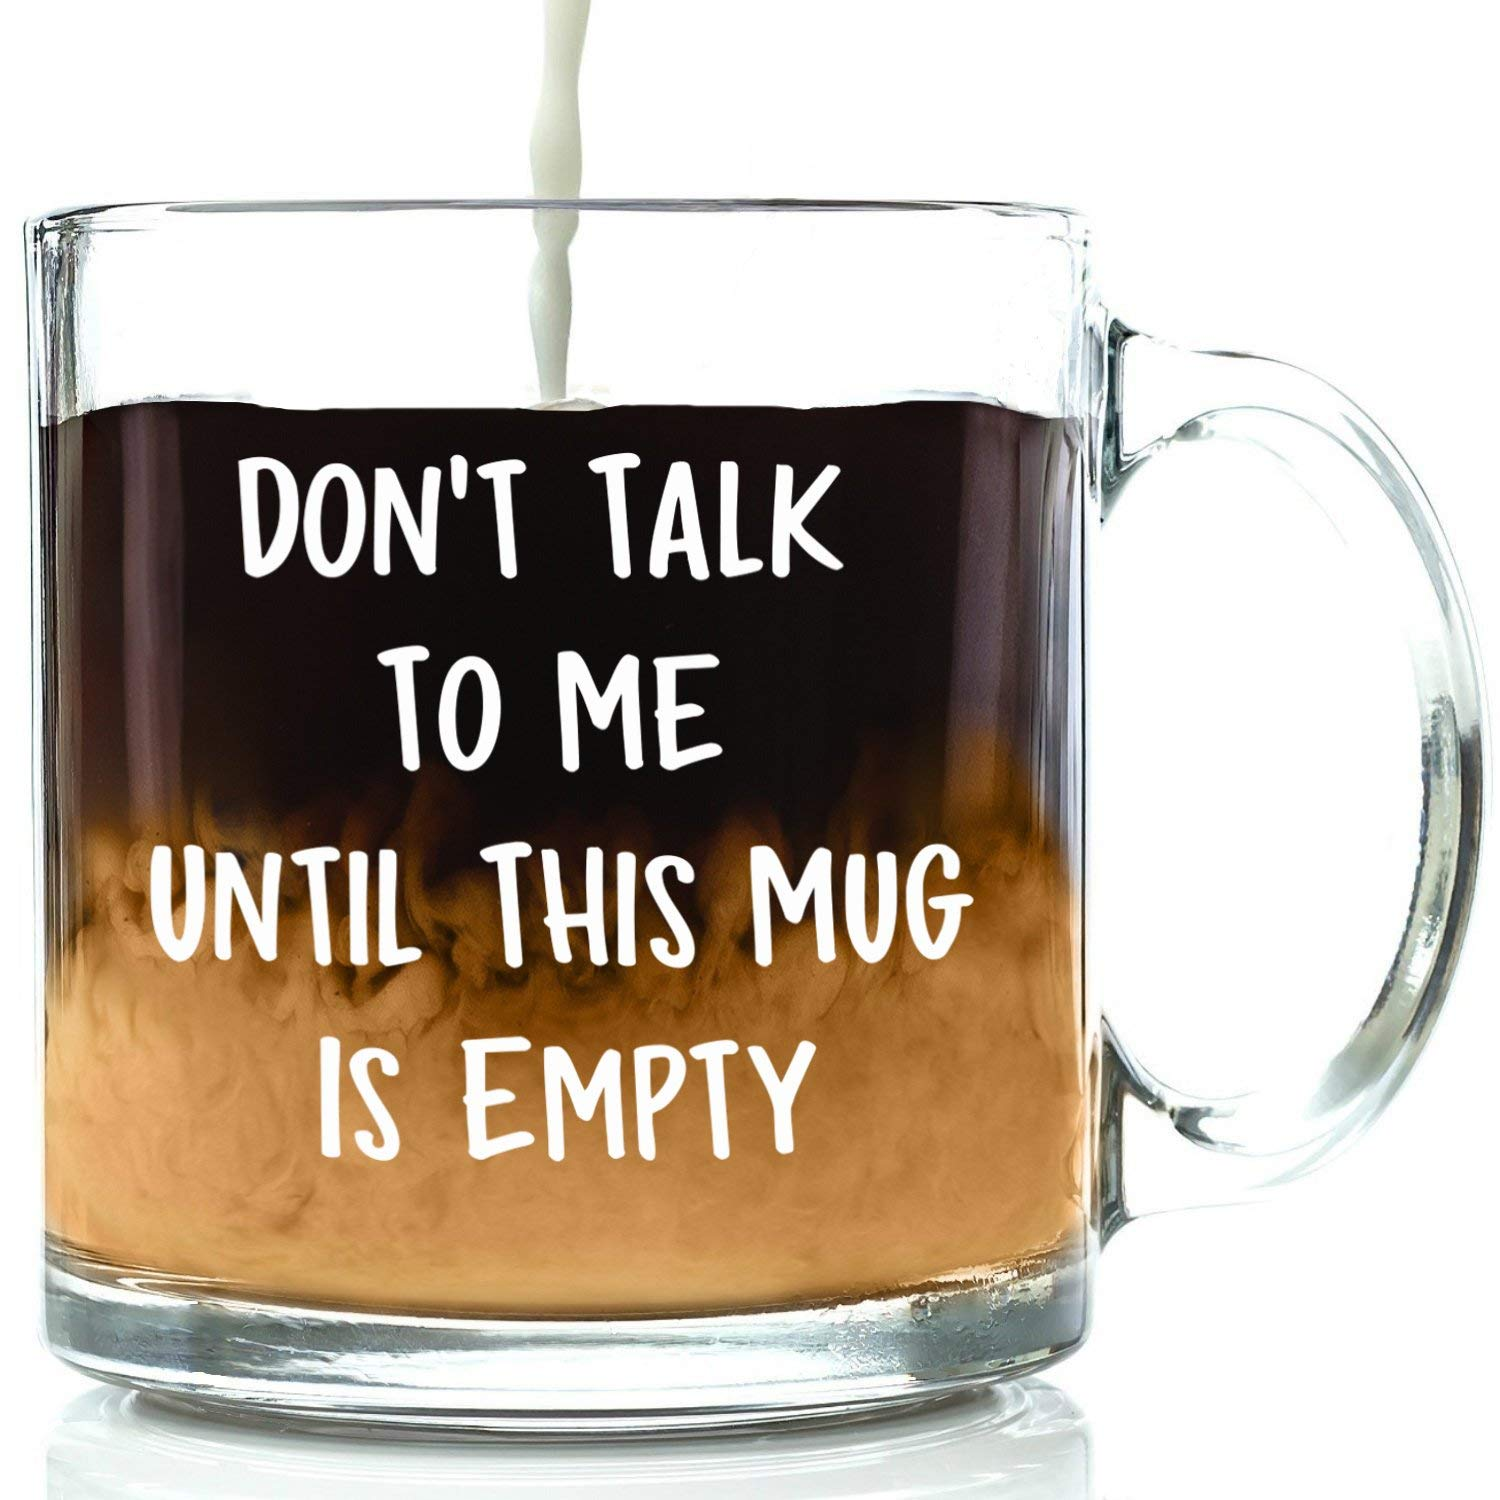 Don't Talk To Me Funny Glass Coffee Mug - Best Birthday Gift For Men & Women